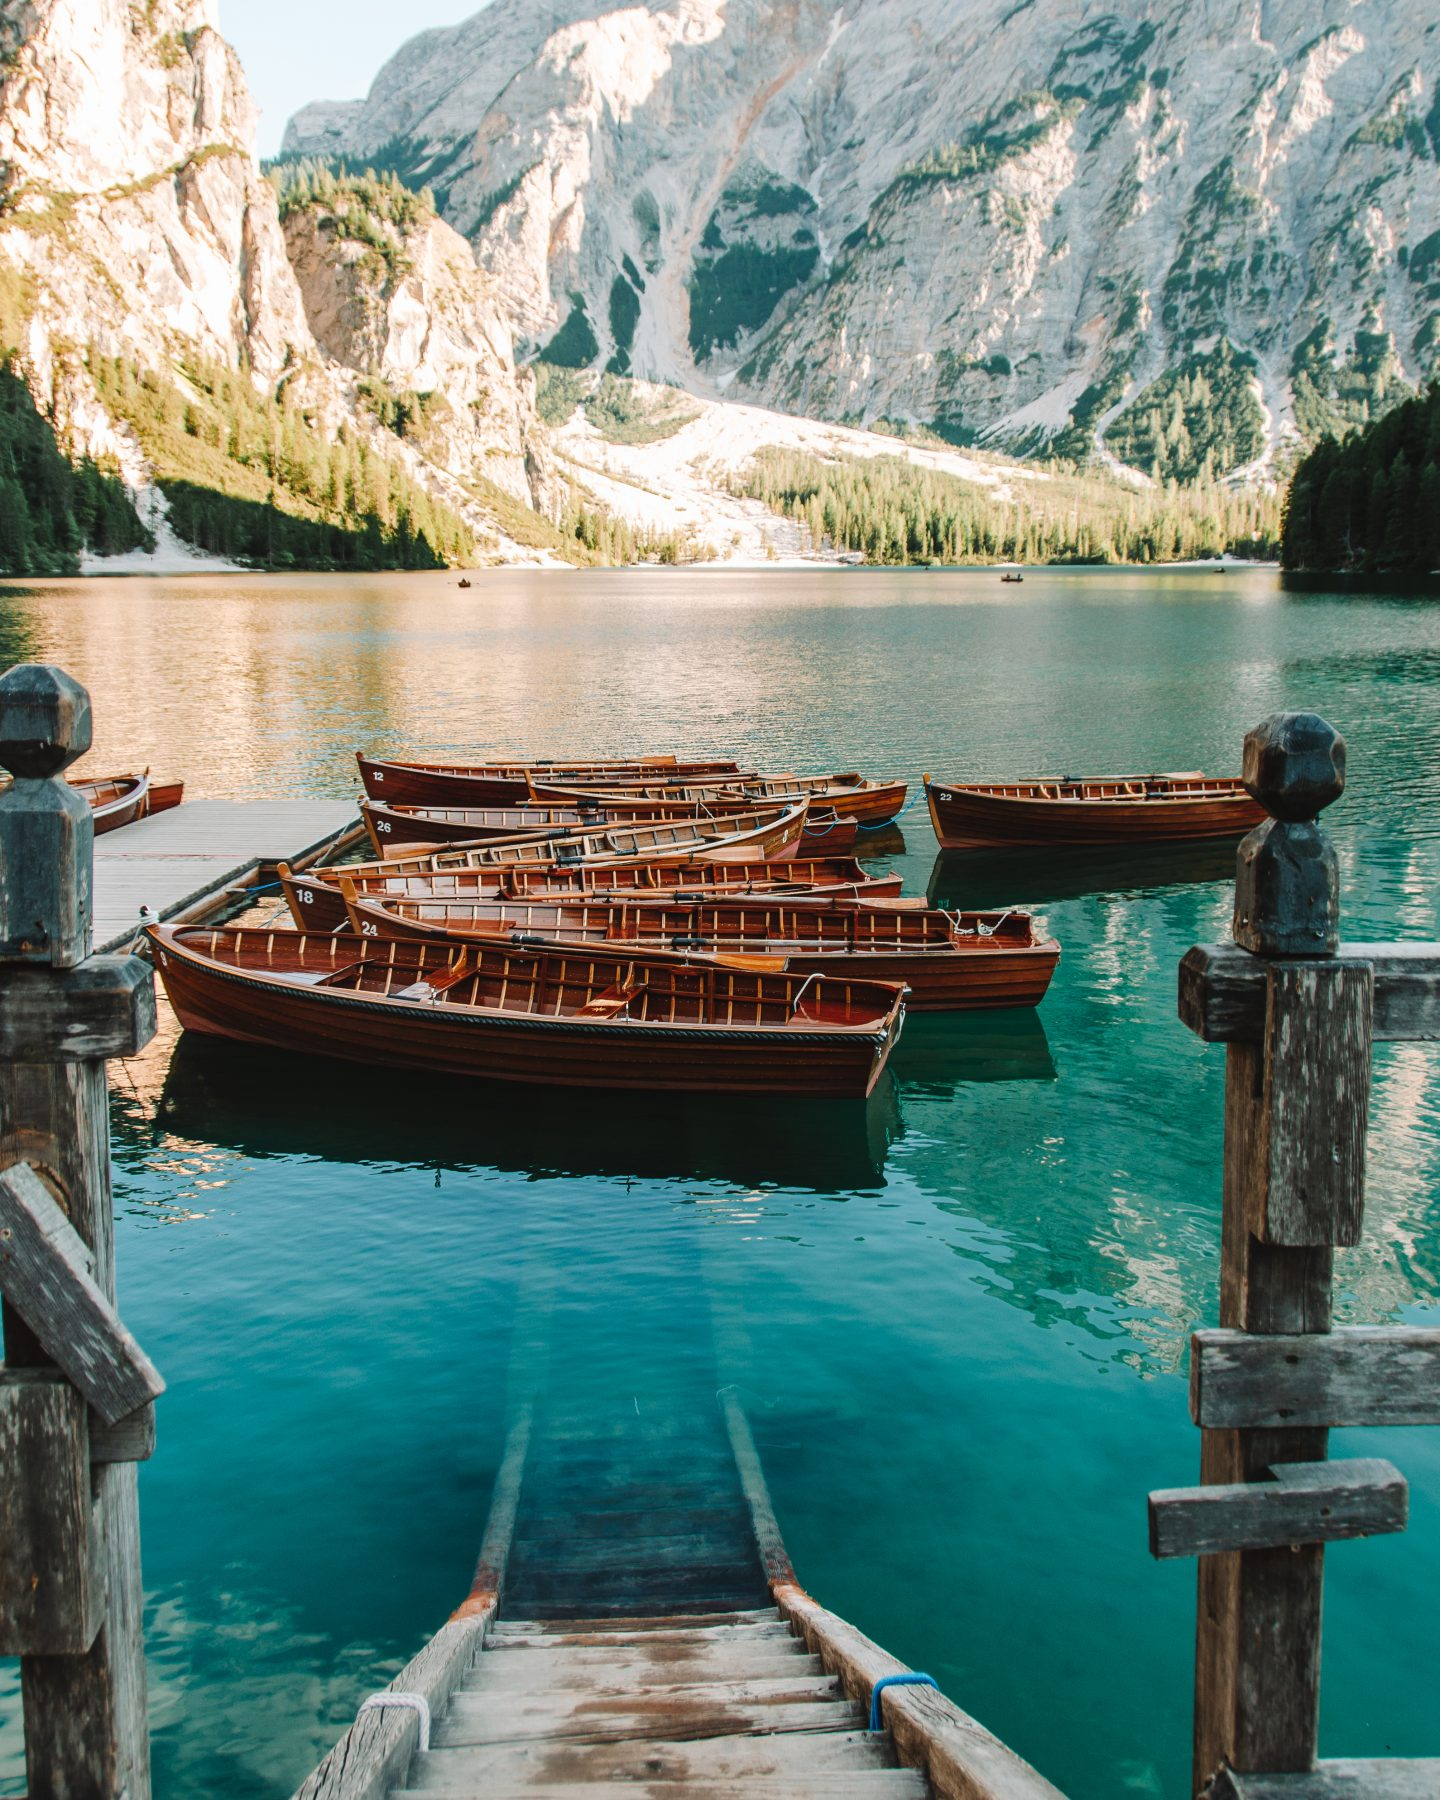 boats in the water at lake braies